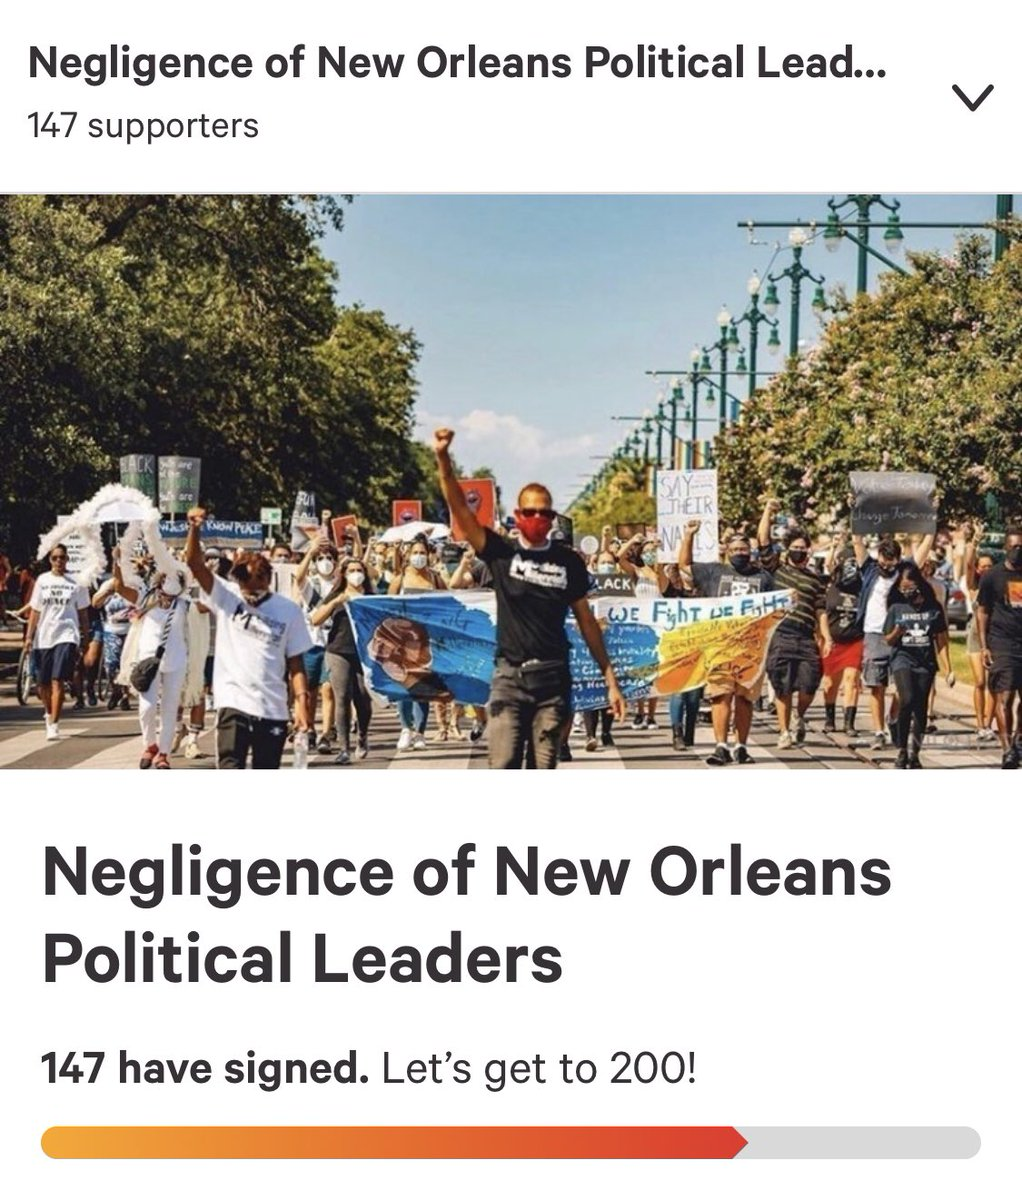 *link in bio* Published yesterday, we have 147 signatures! Let's get to 200 today! Be sure to SHARE!   #MobilizingMillennials #AffordableHousing #EquitableEducation #Healthcare #FelonsRightToVote #DecriminalizationOfMarijuana #DecriminalizationOfSexWork #DefundPolice #NOPD #NOLA https://t.co/2kVIQU9Hys